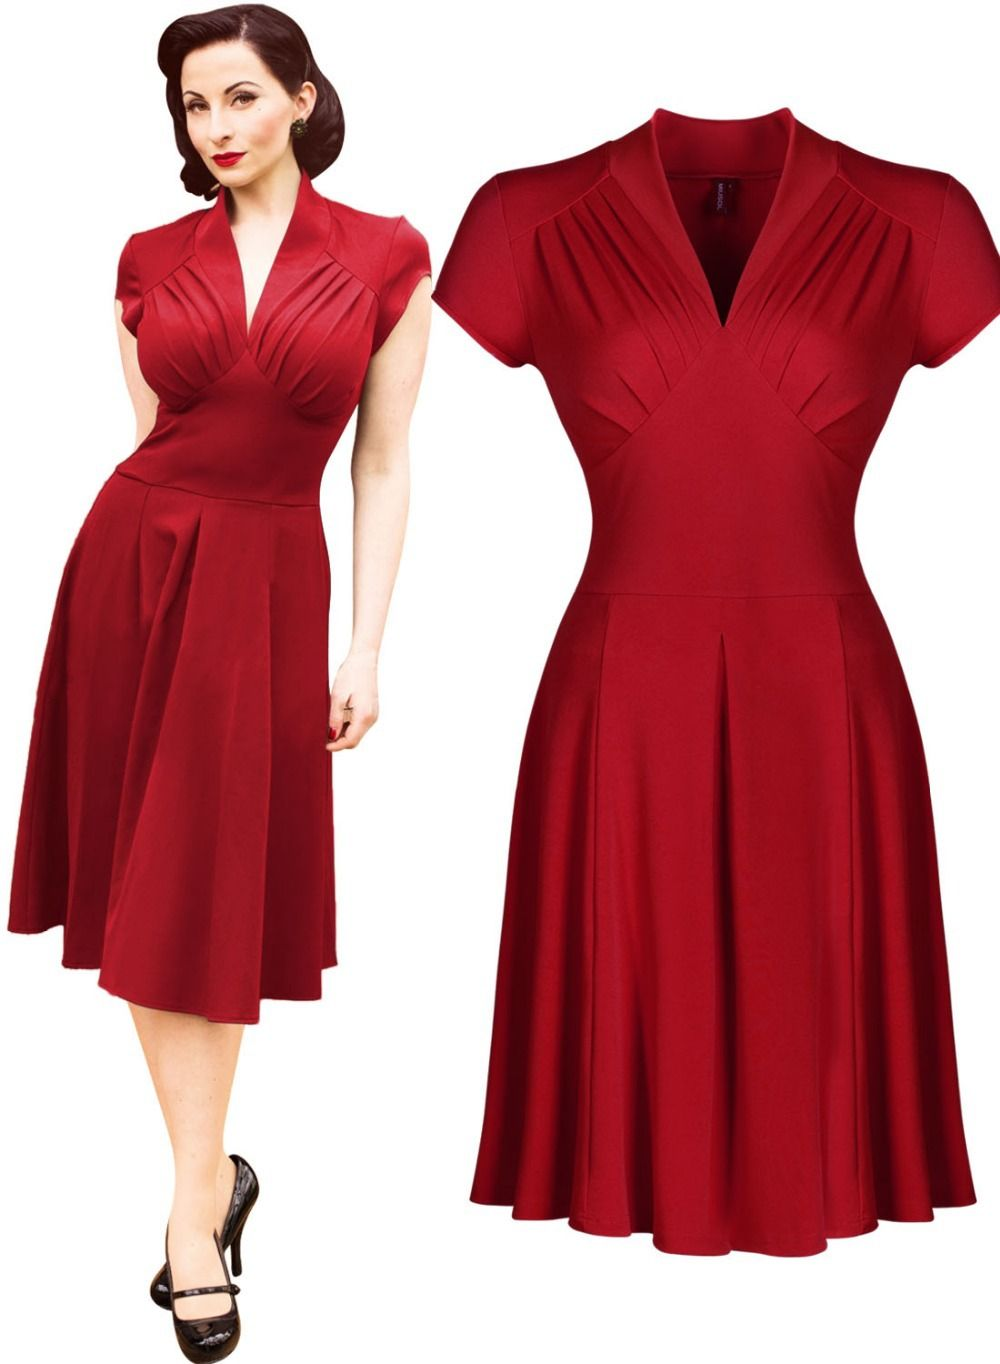 Vintage Clothing For Women | The Ultimate Shopping Guide in 1940′s ...